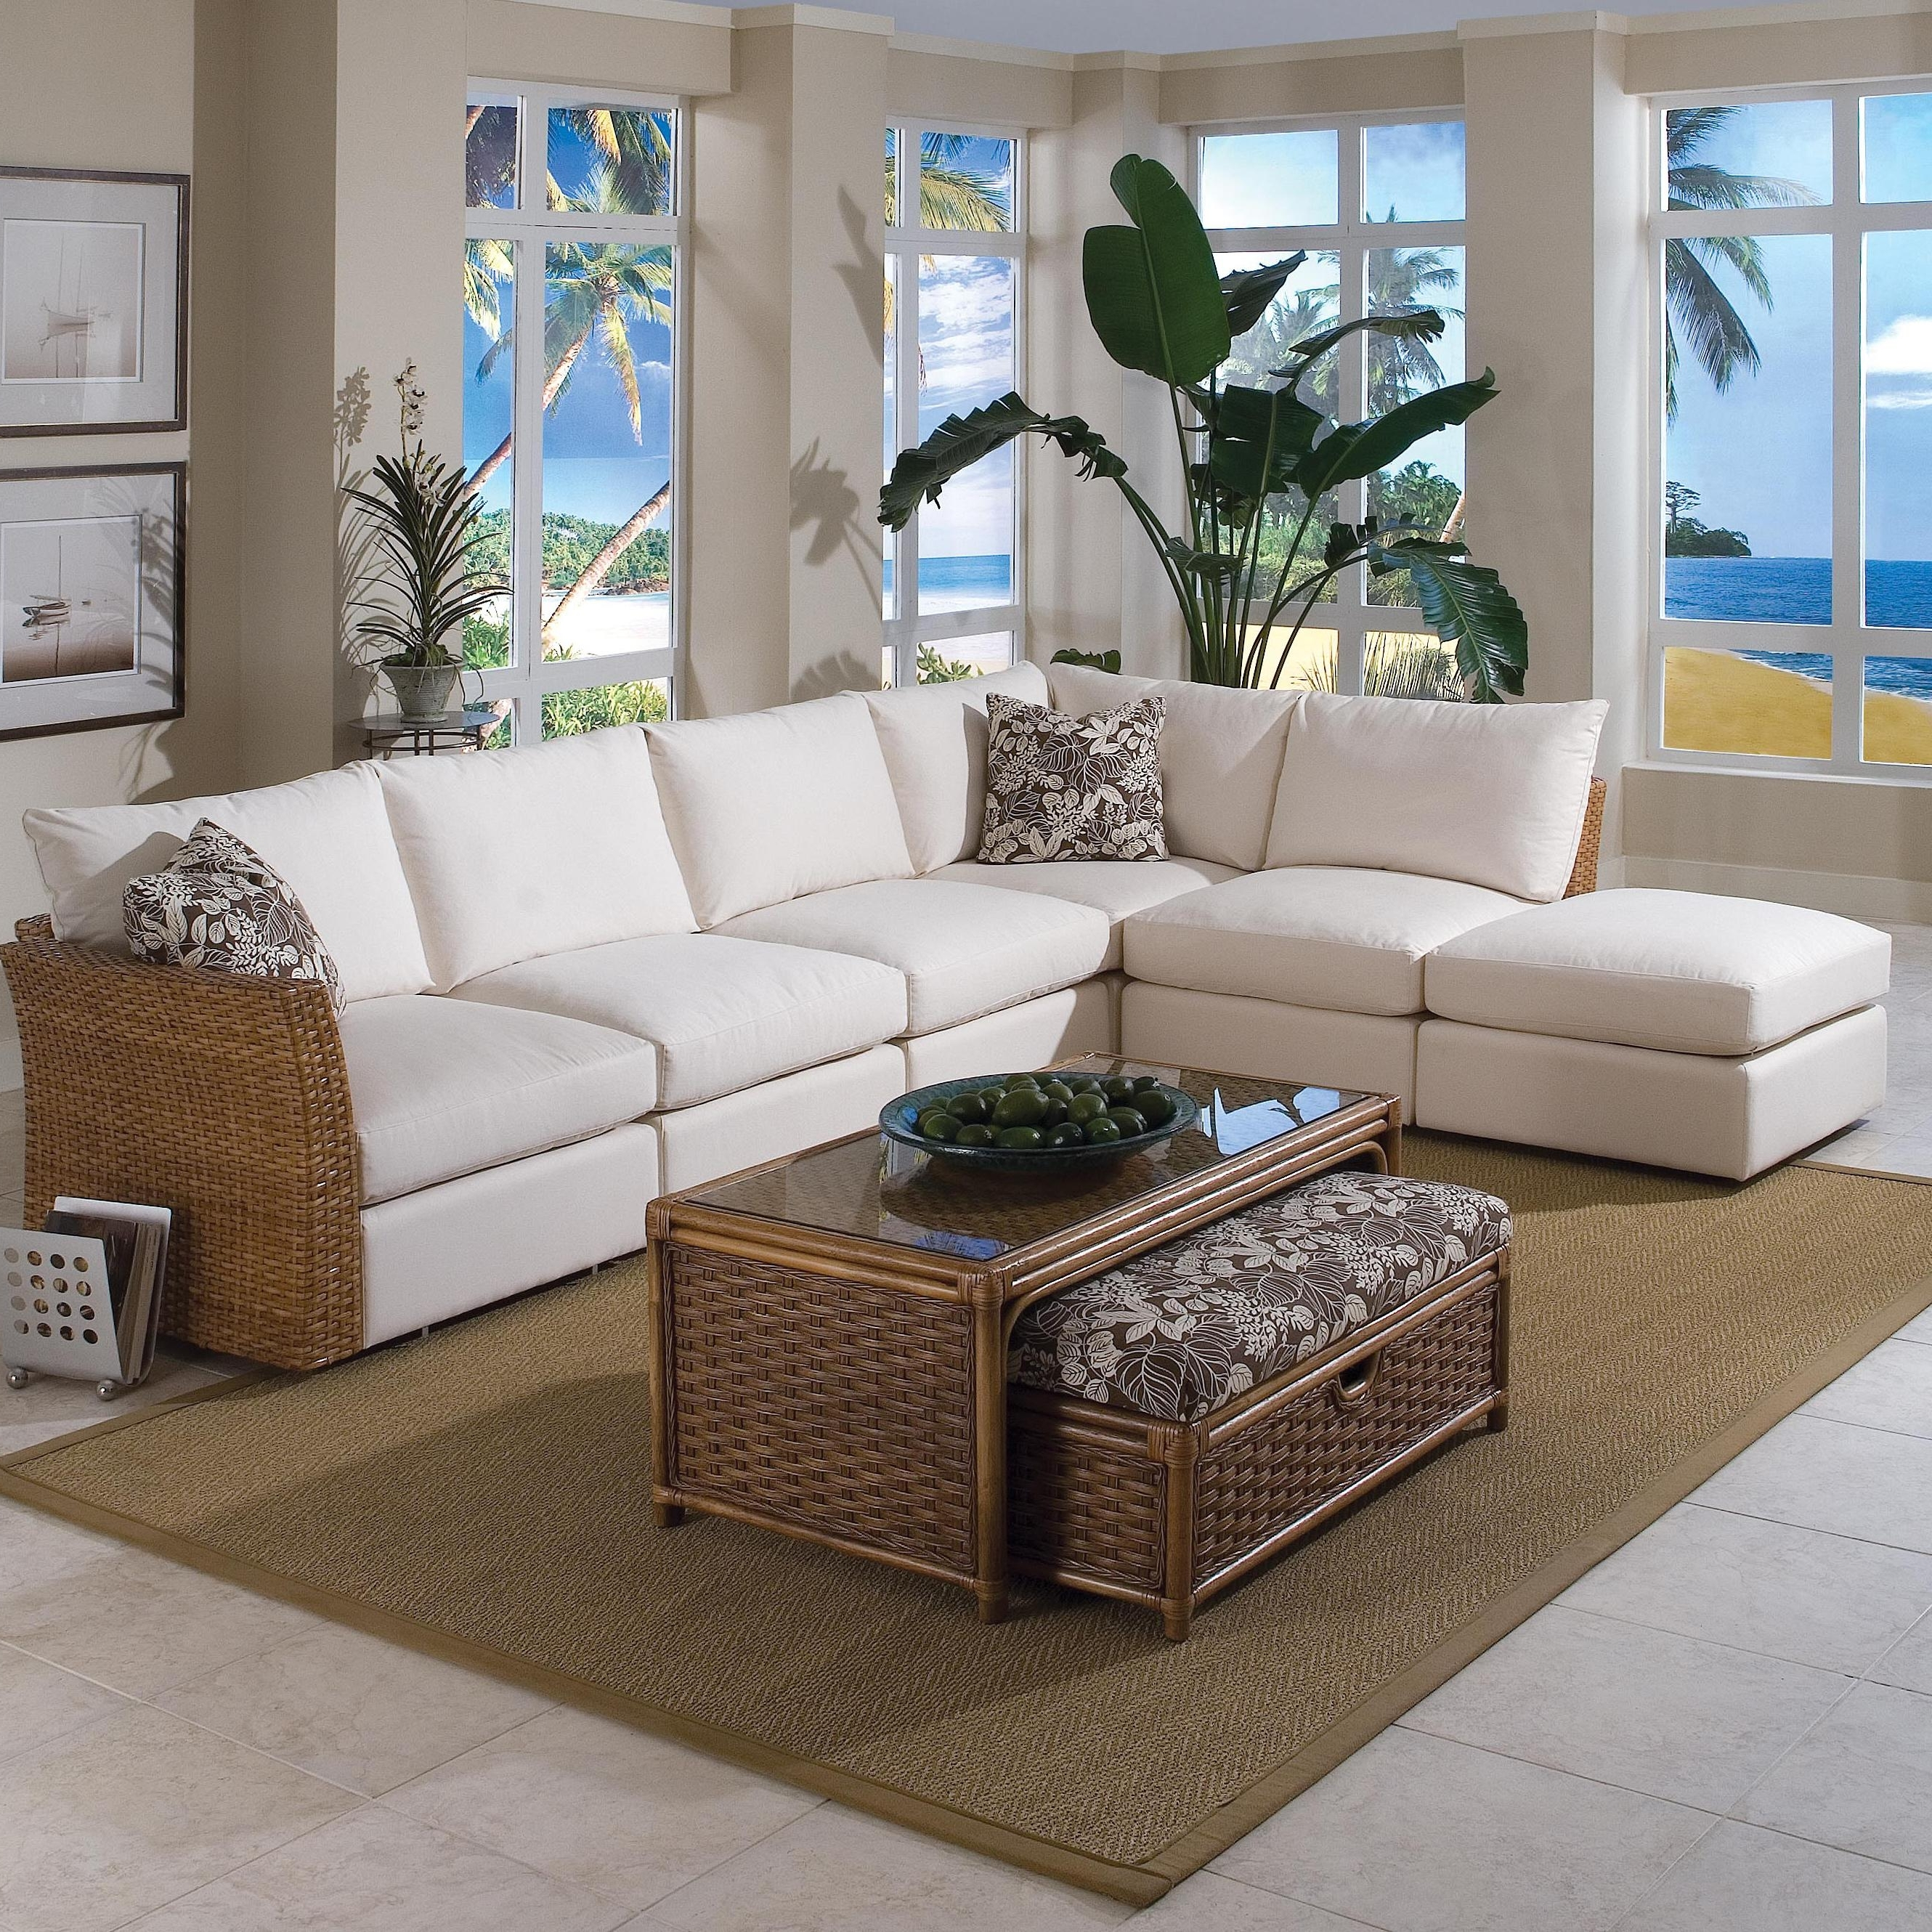 Widely Used Lubbock Sectional Sofas Pertaining To Braxton Culler Grand Water Point Tropical Sectional Sofa With Two (View 17 of 20)